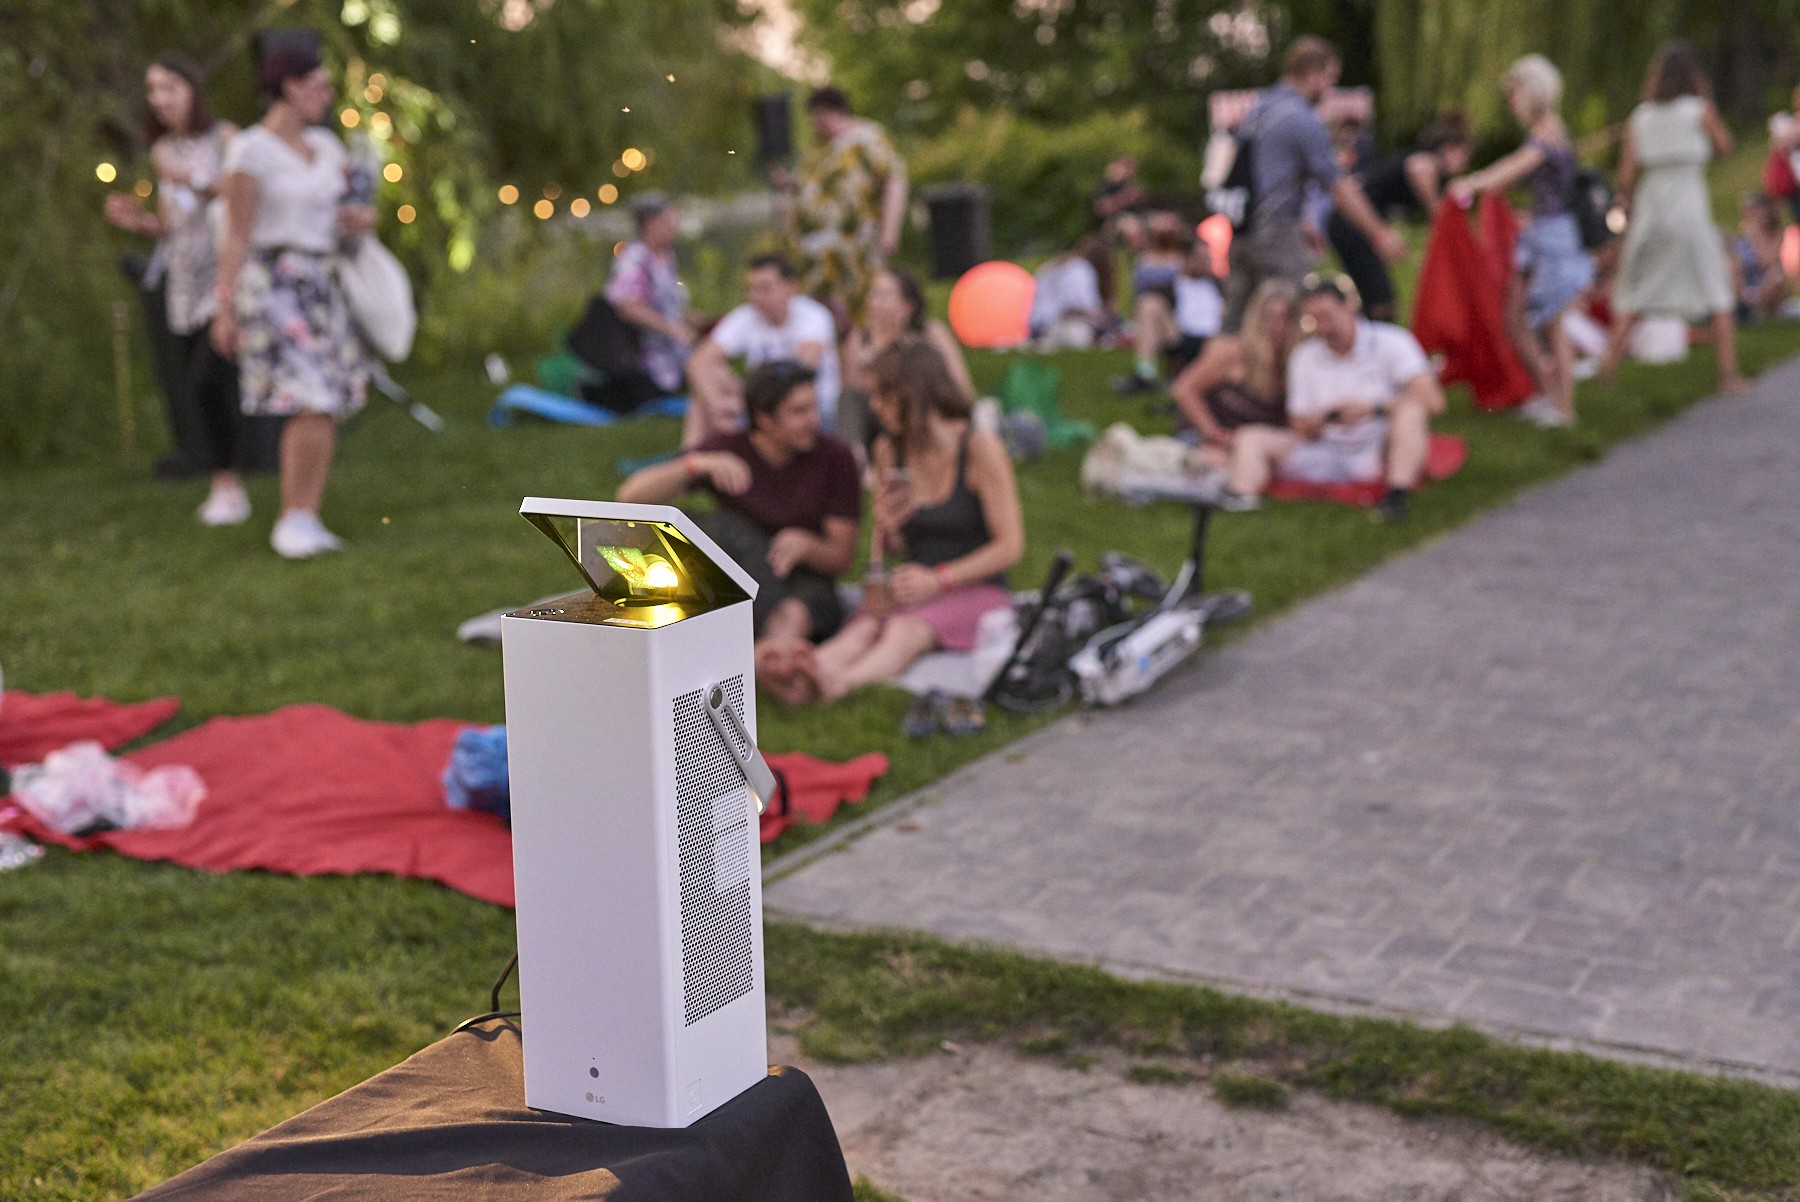 LG's CineBeam 4K projector at the LG Sunset Cinema event